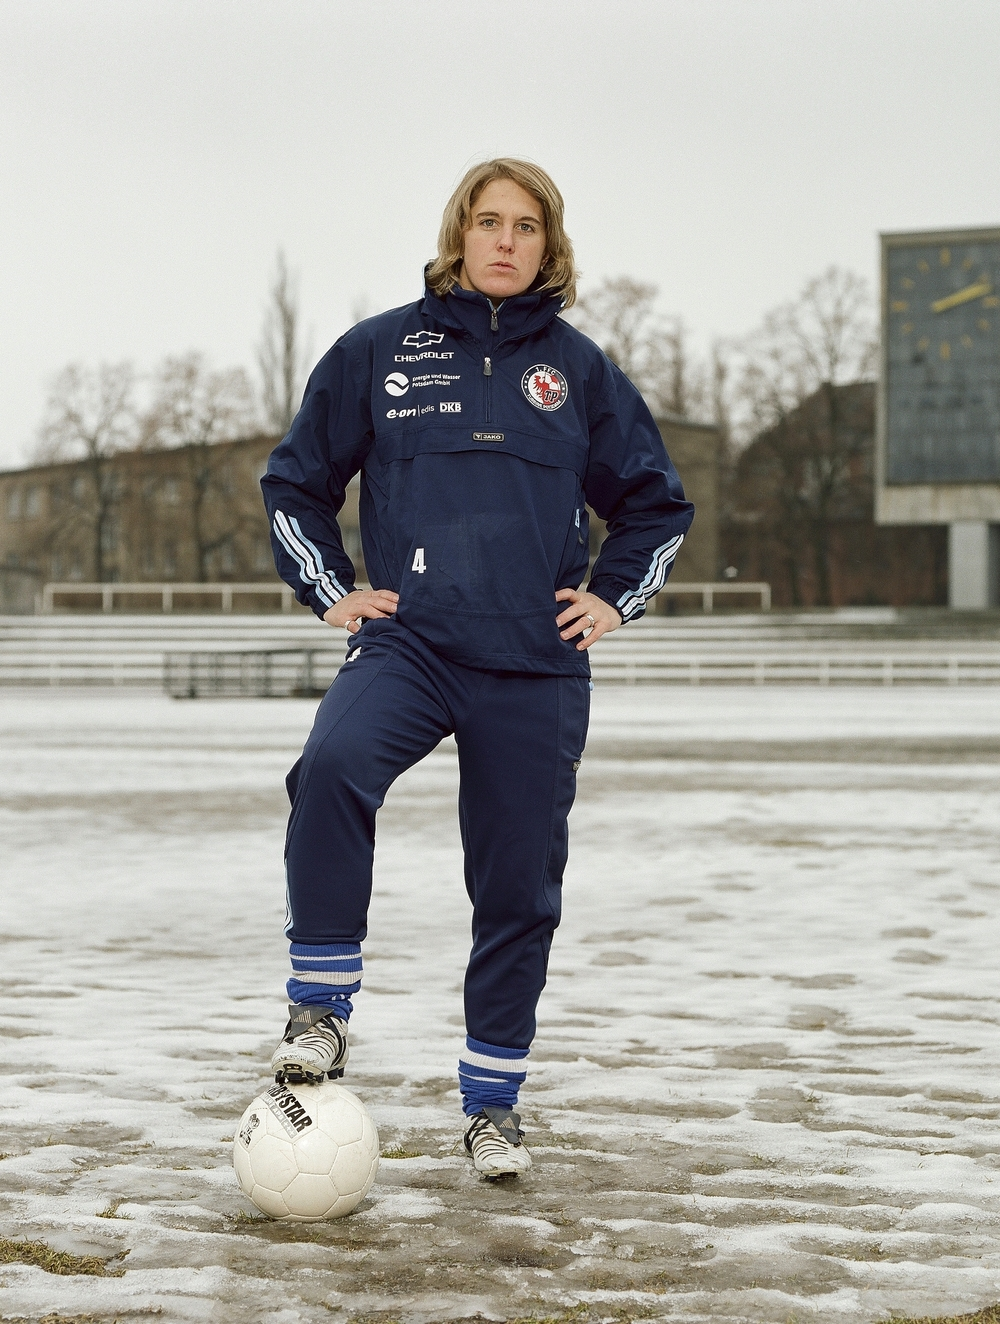 Britta Carlson, player in the German national team, Potsdam